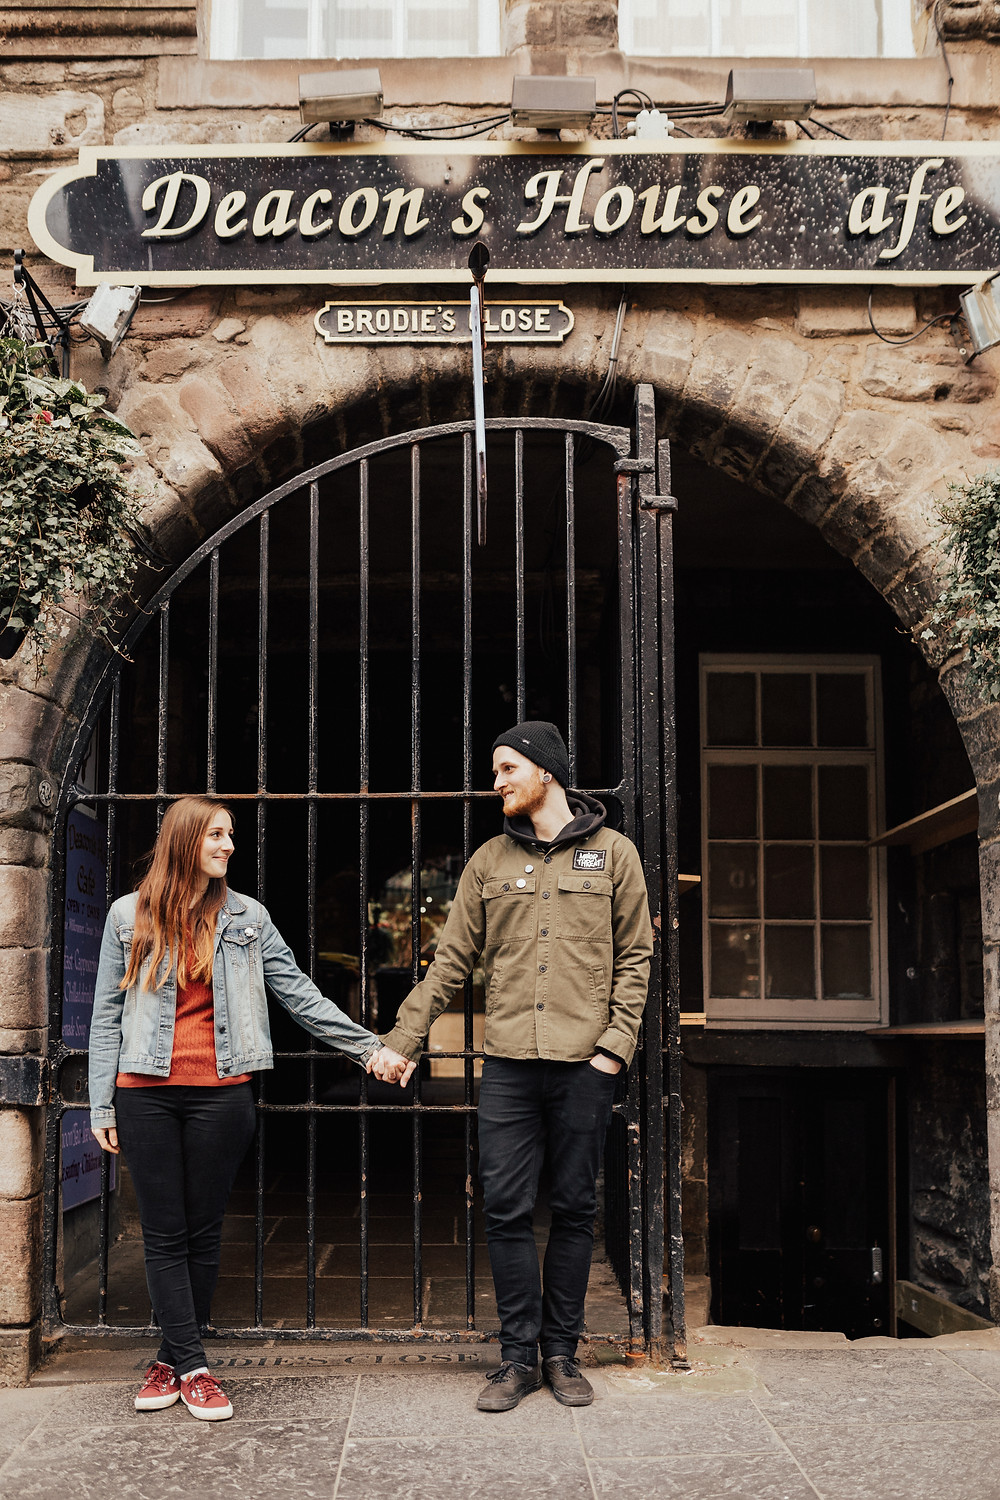 lovestory-photos-young-couple-city-photoshooting-photographer-ideas-edinburgh-oldtown